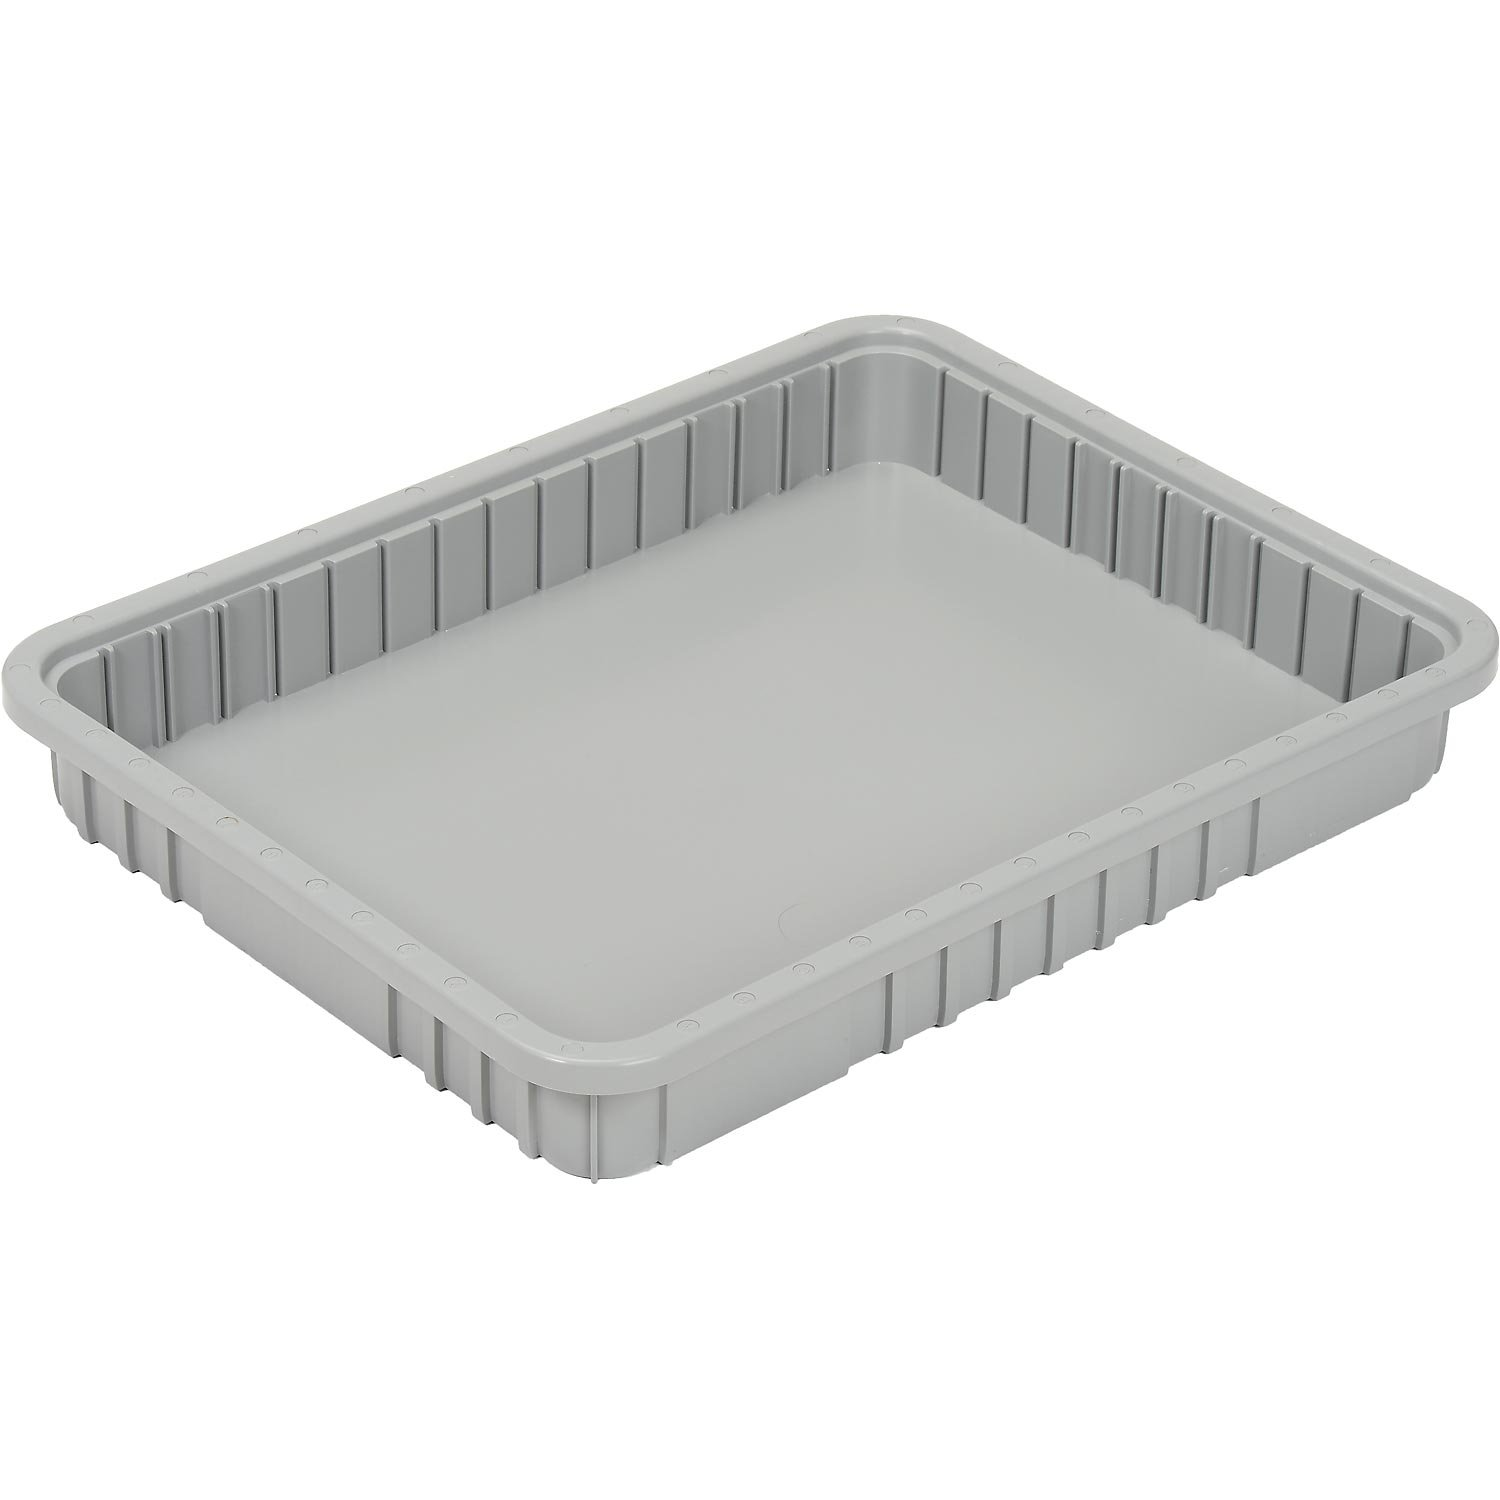 Plastic Dividable Grid Container, 22-1/2''L x 17-1/2''W x 3''H, Gray - Lot of 6